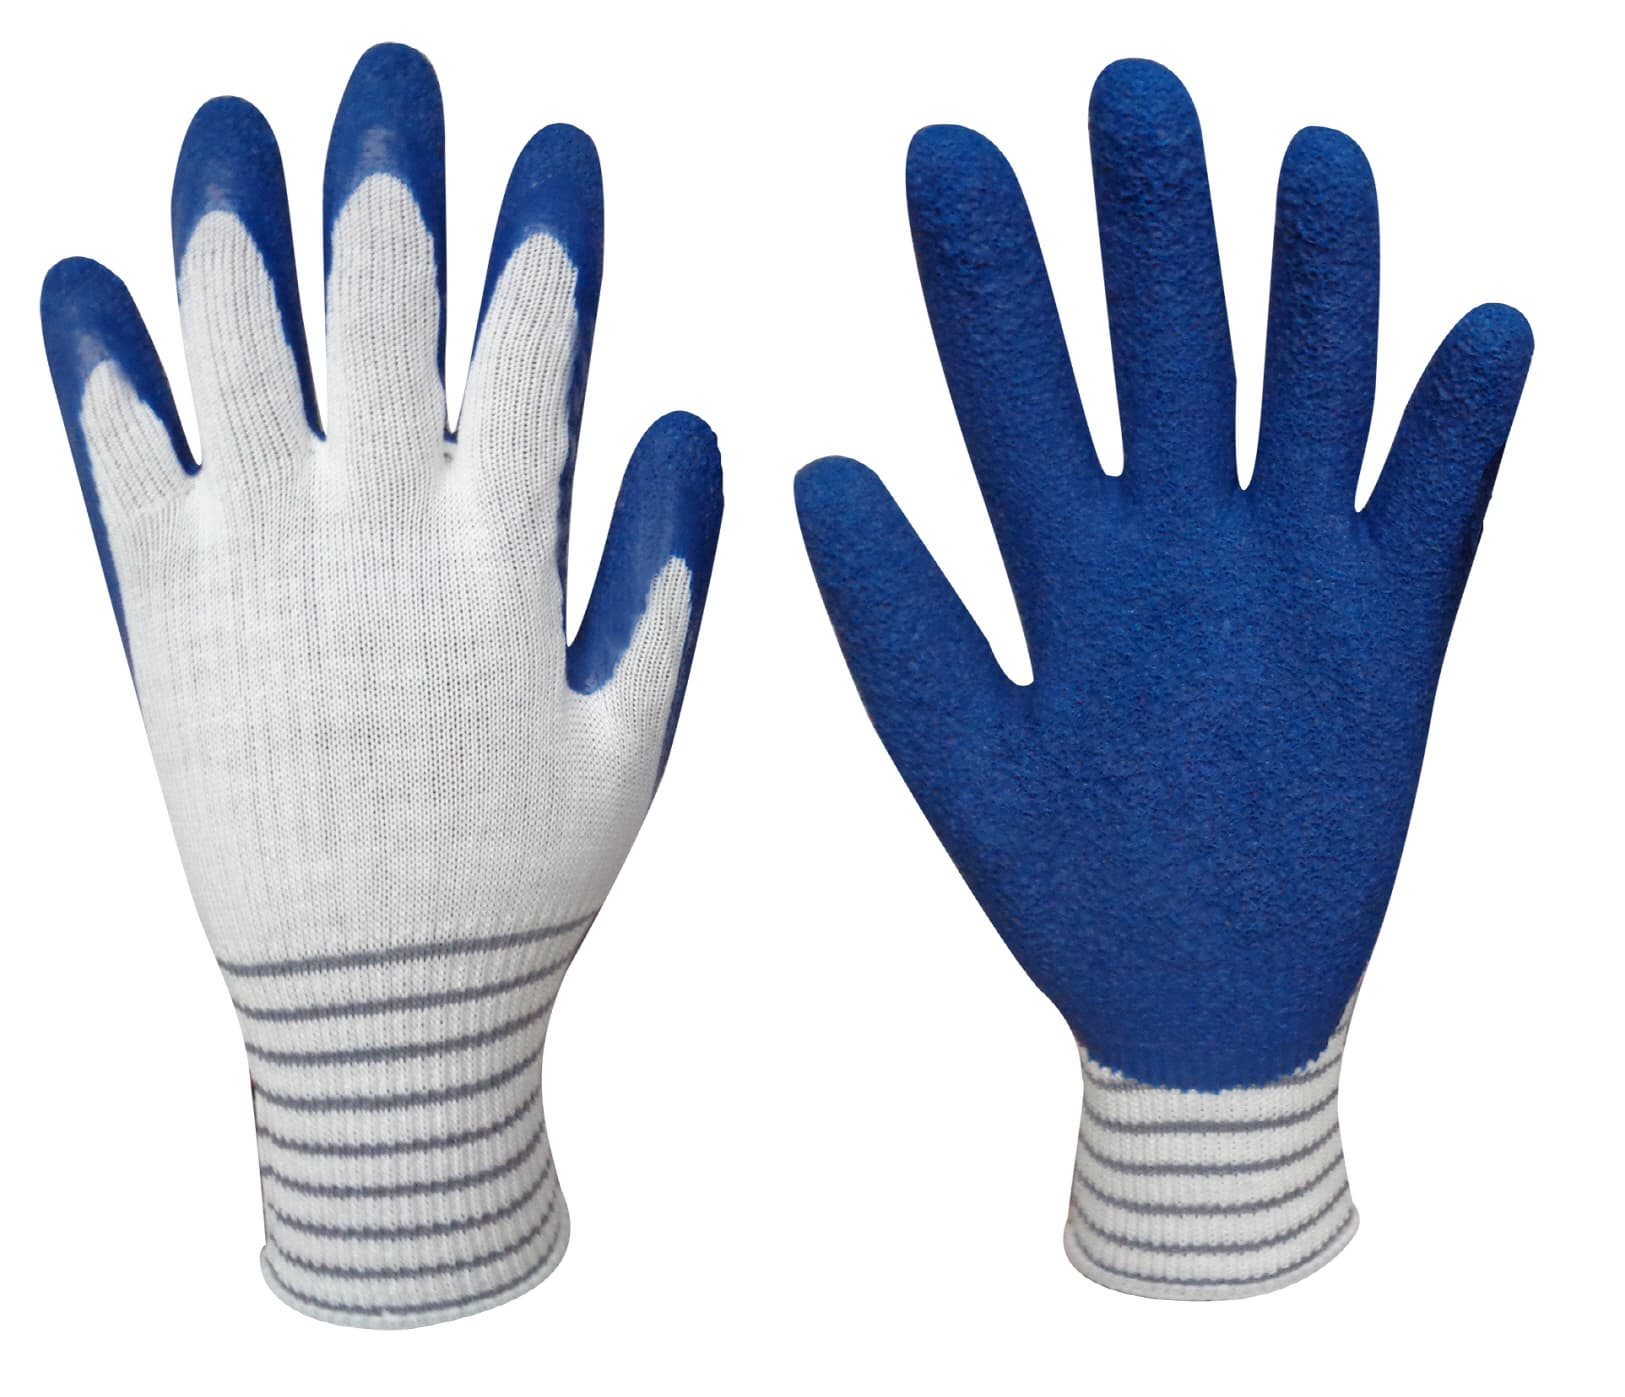 BHLCG_13G Bamboo_PSF with Latex Crinkle coating gloves